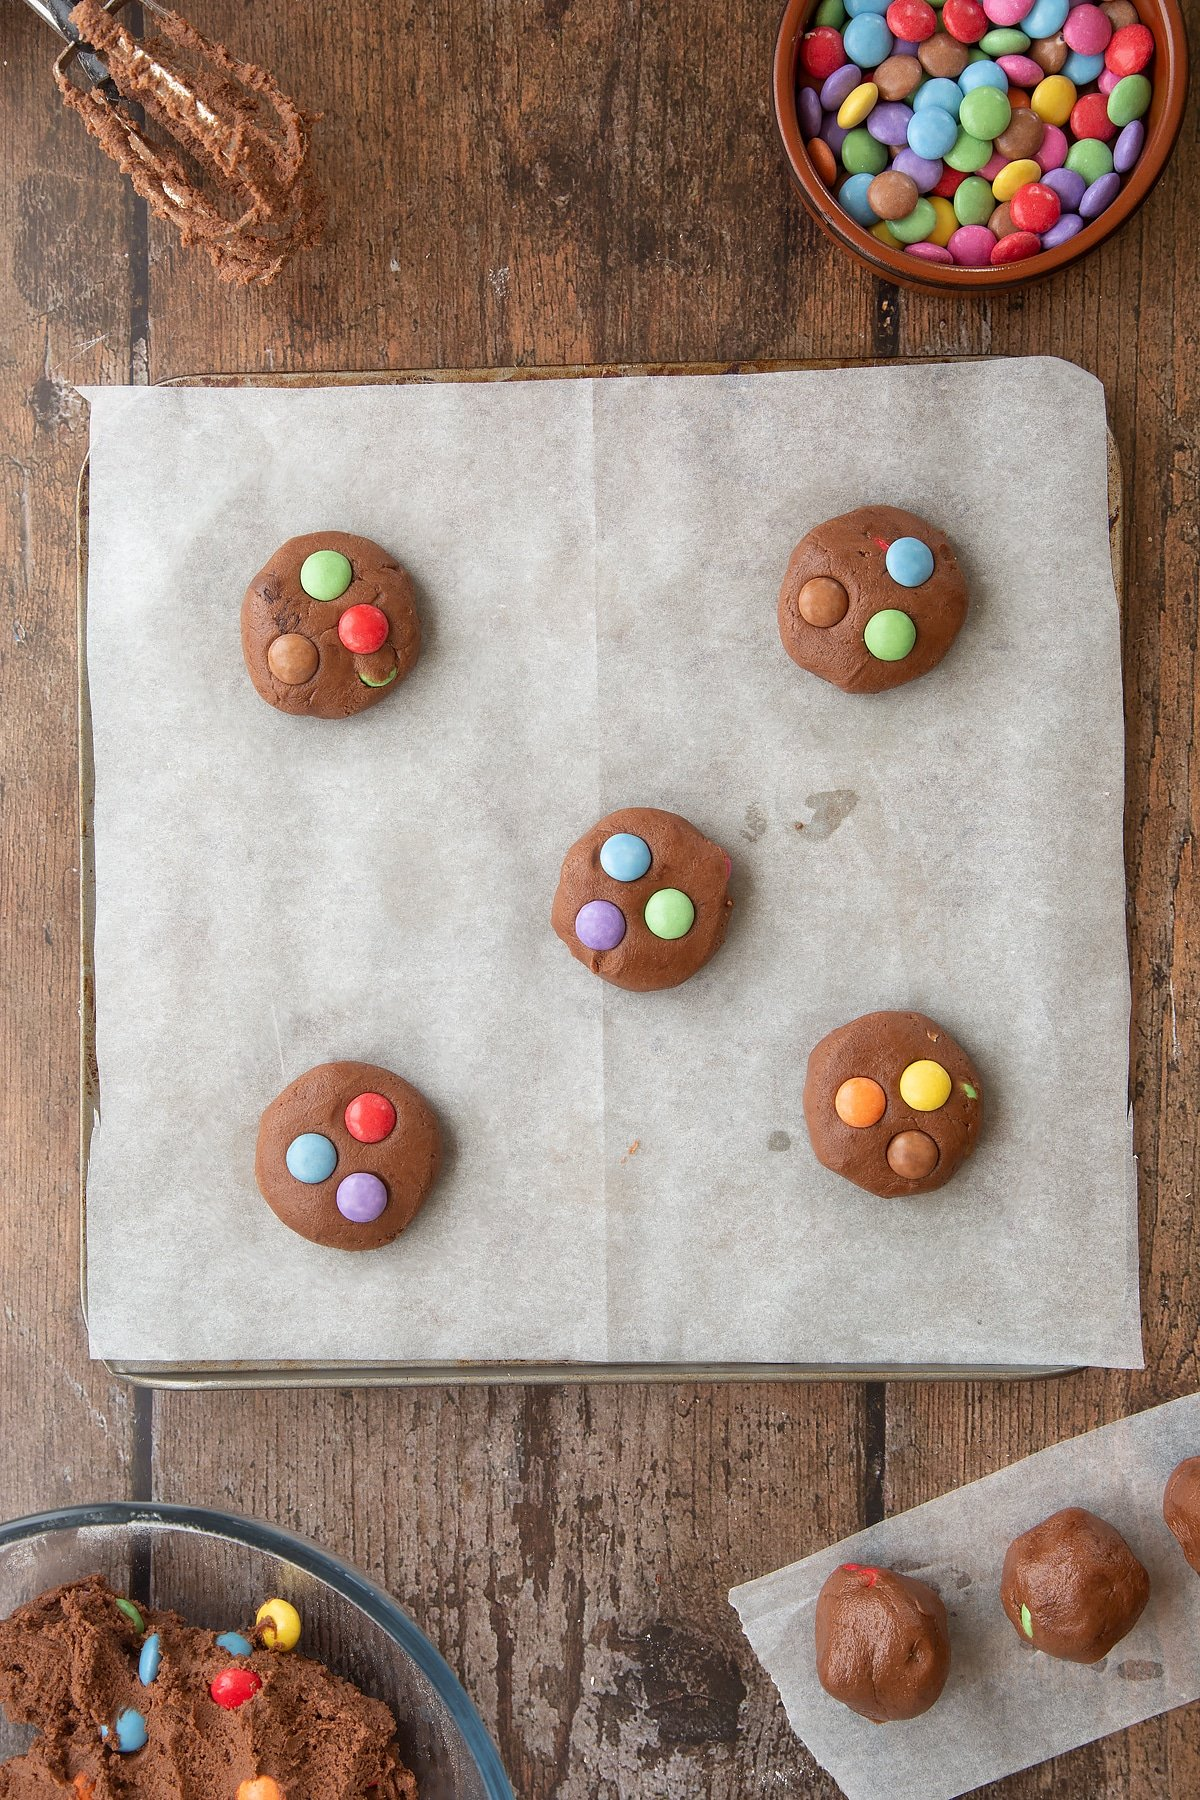 Smartie cookies on a baking tray lined with baking paper, ready to bake. Ingredients to make the Smartie cookie recipe surround the tray.